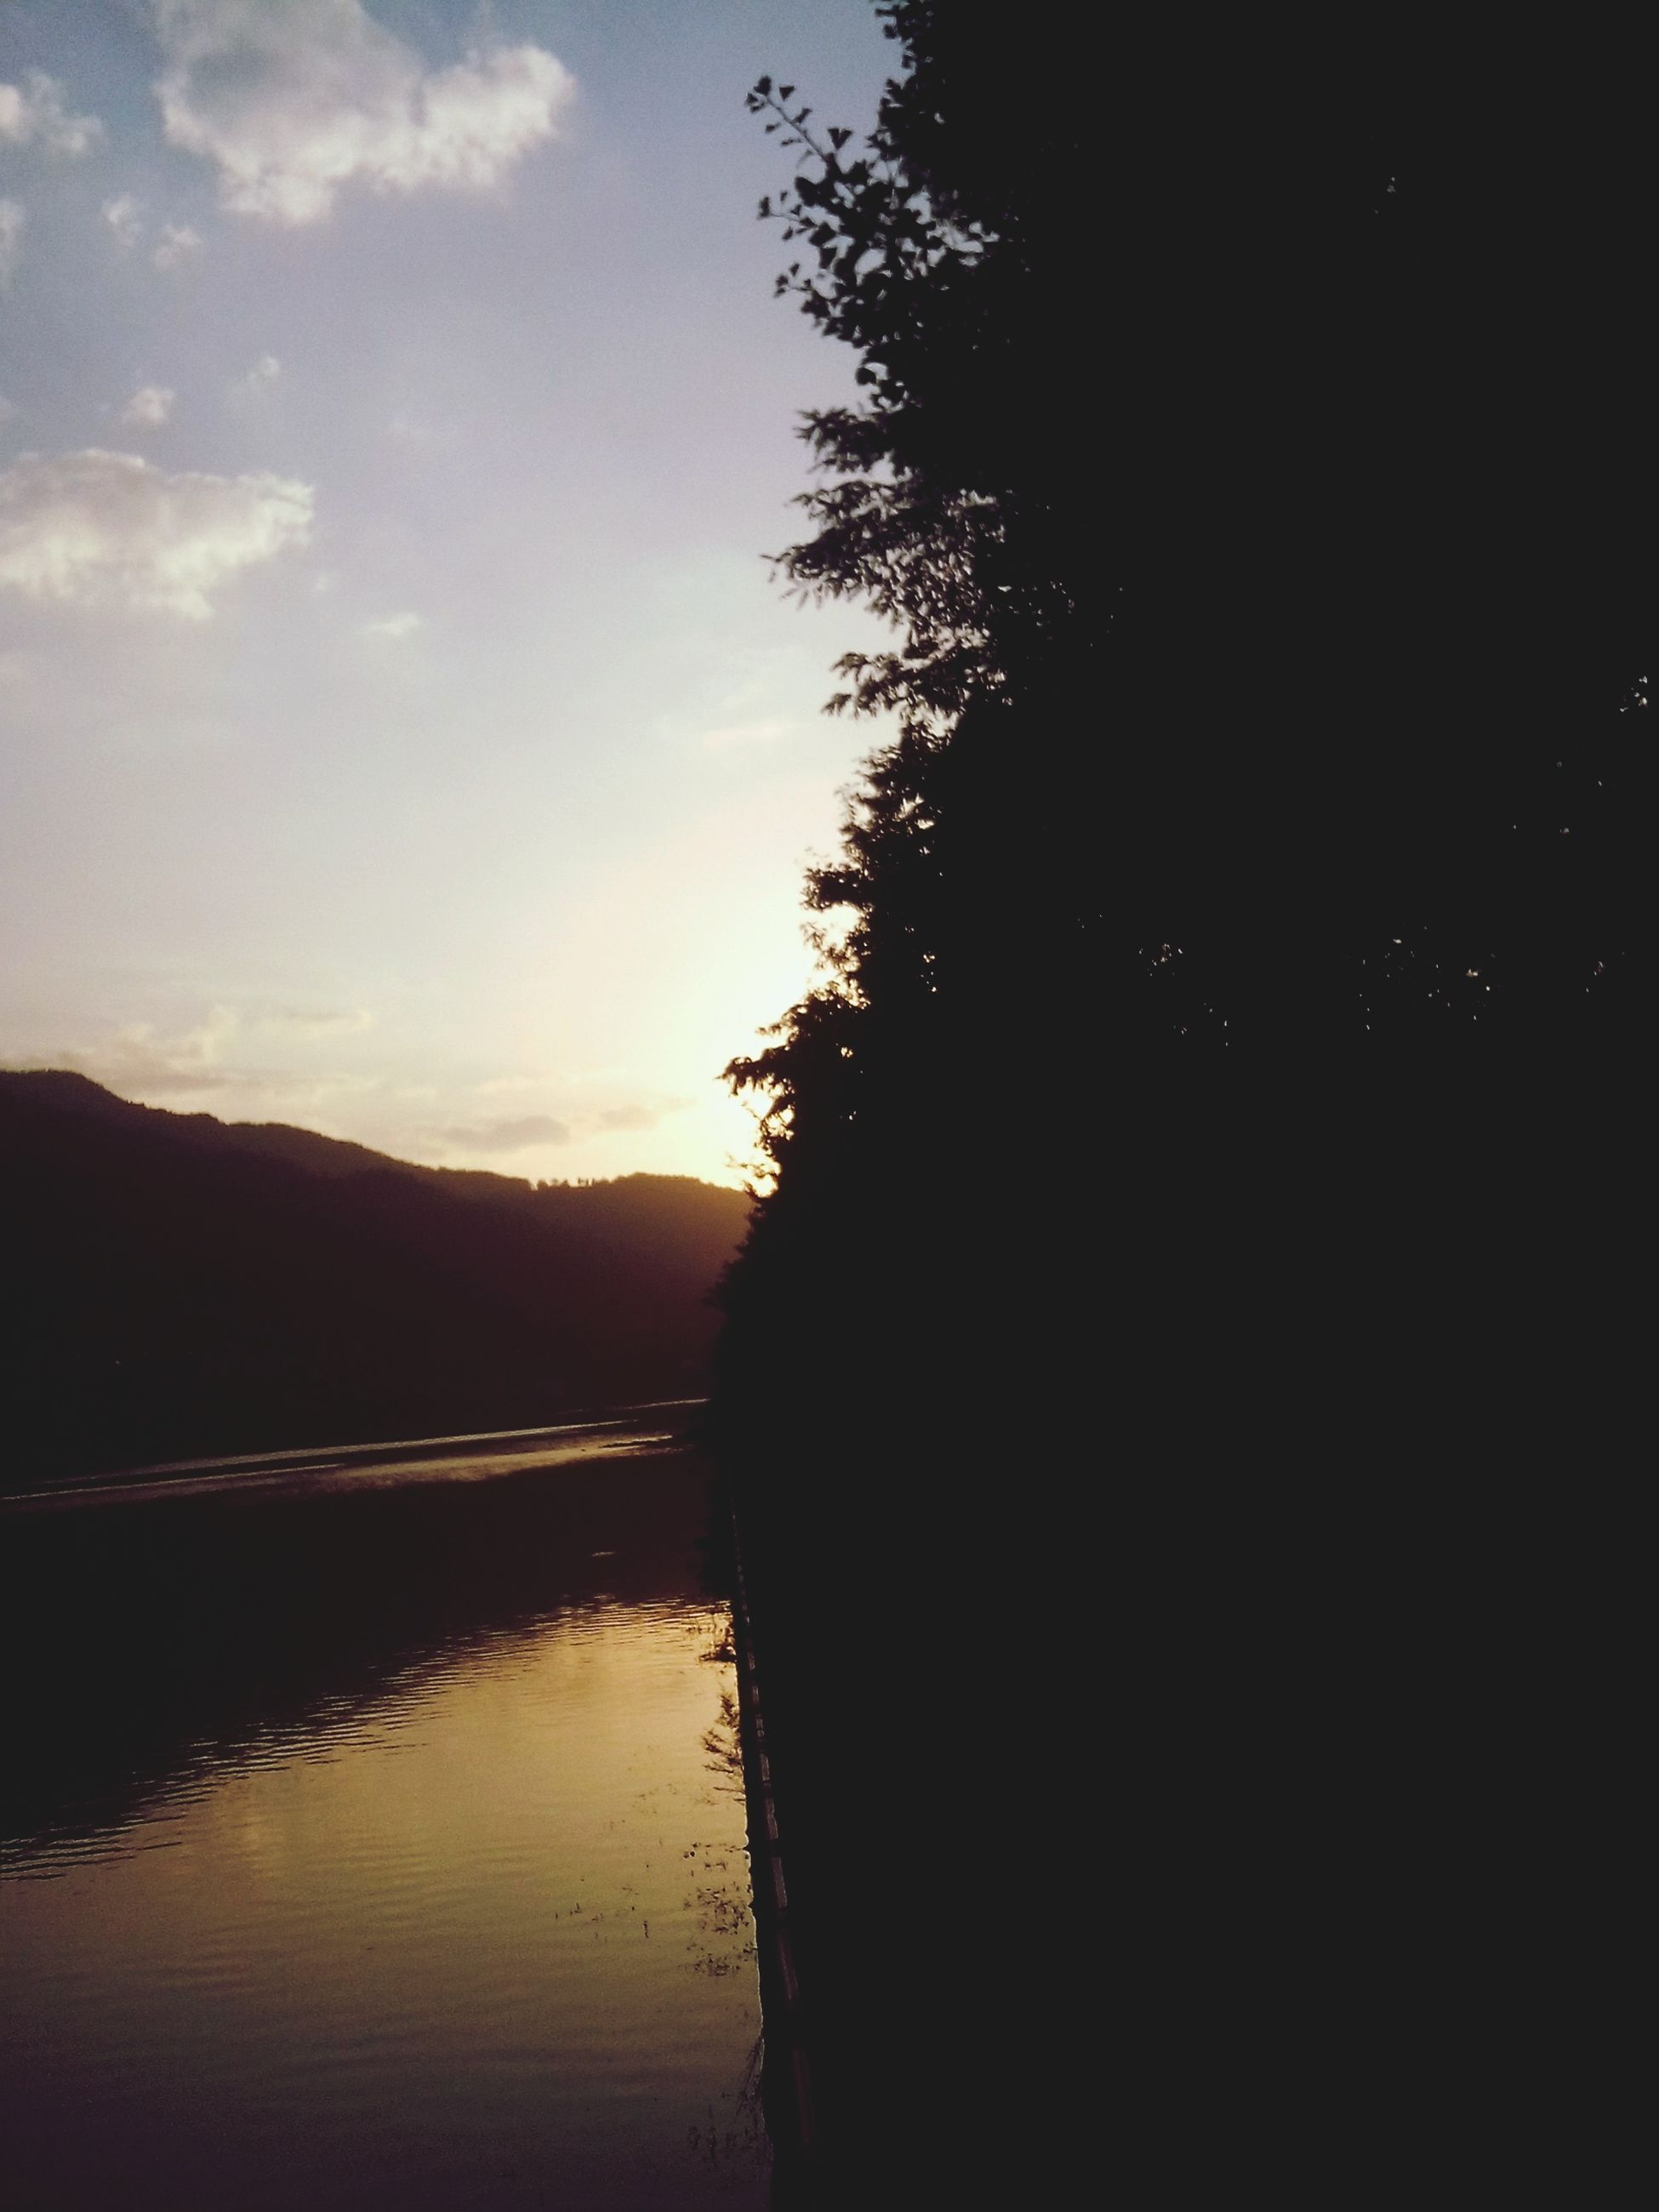 water, silhouette, tranquil scene, tranquility, sunset, scenics, reflection, lake, sky, beauty in nature, nature, river, tree, idyllic, mountain, calm, dusk, waterfront, outdoors, landscape